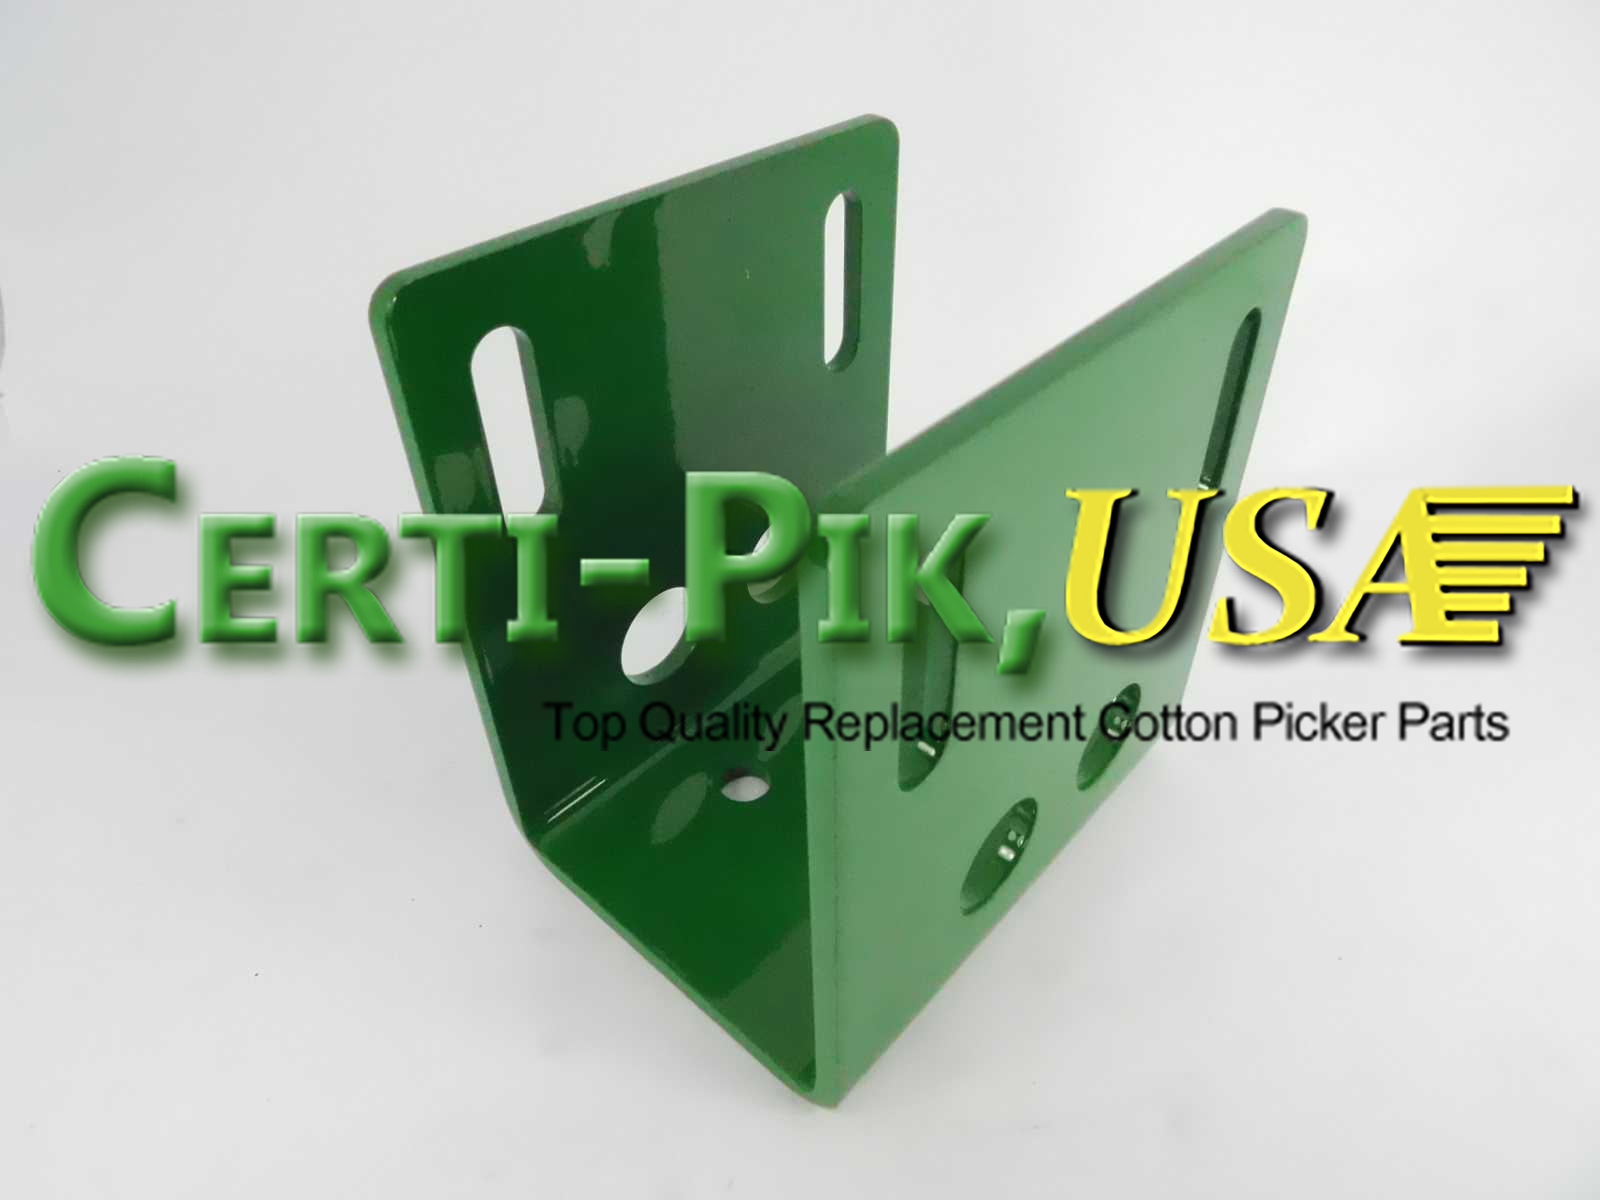 Picking Unit Cabinet: John Deere 9976-CP690 Upper Cabinet N371201 (71201) for Sale